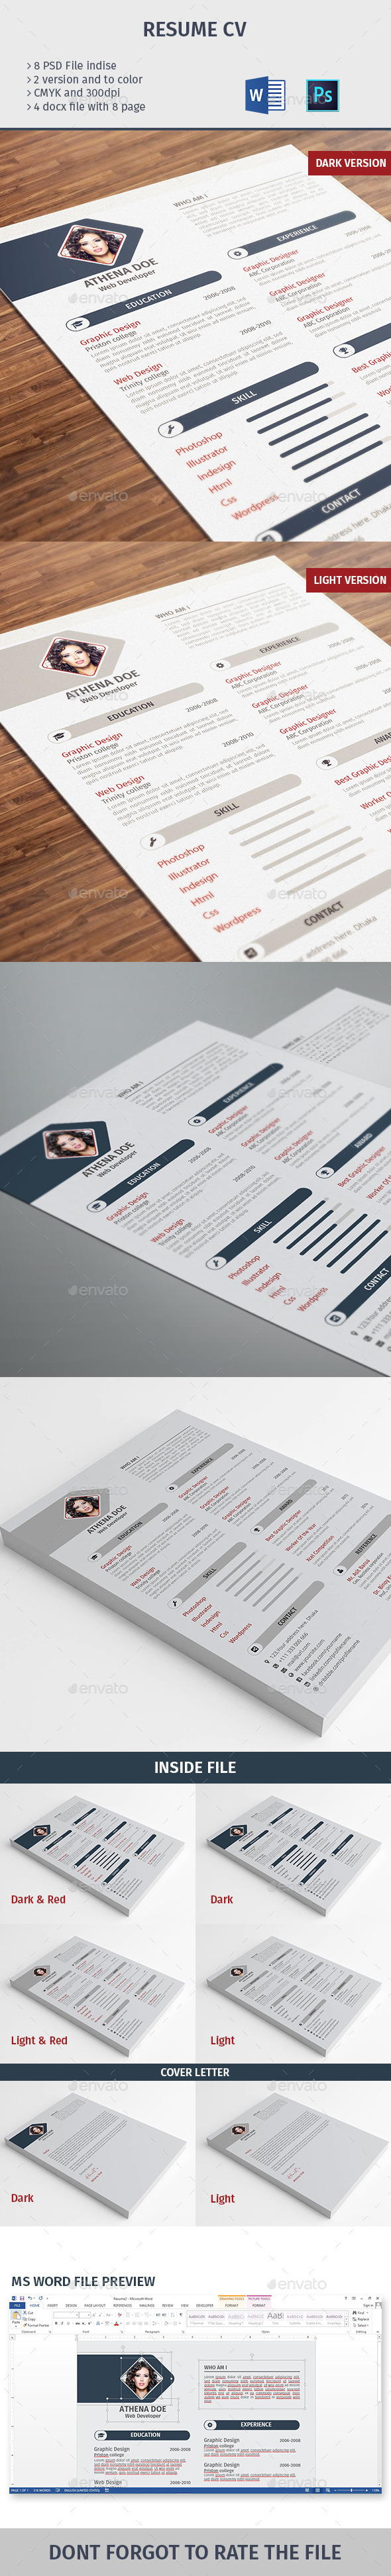 GraphicRiver Resume CV 10092923